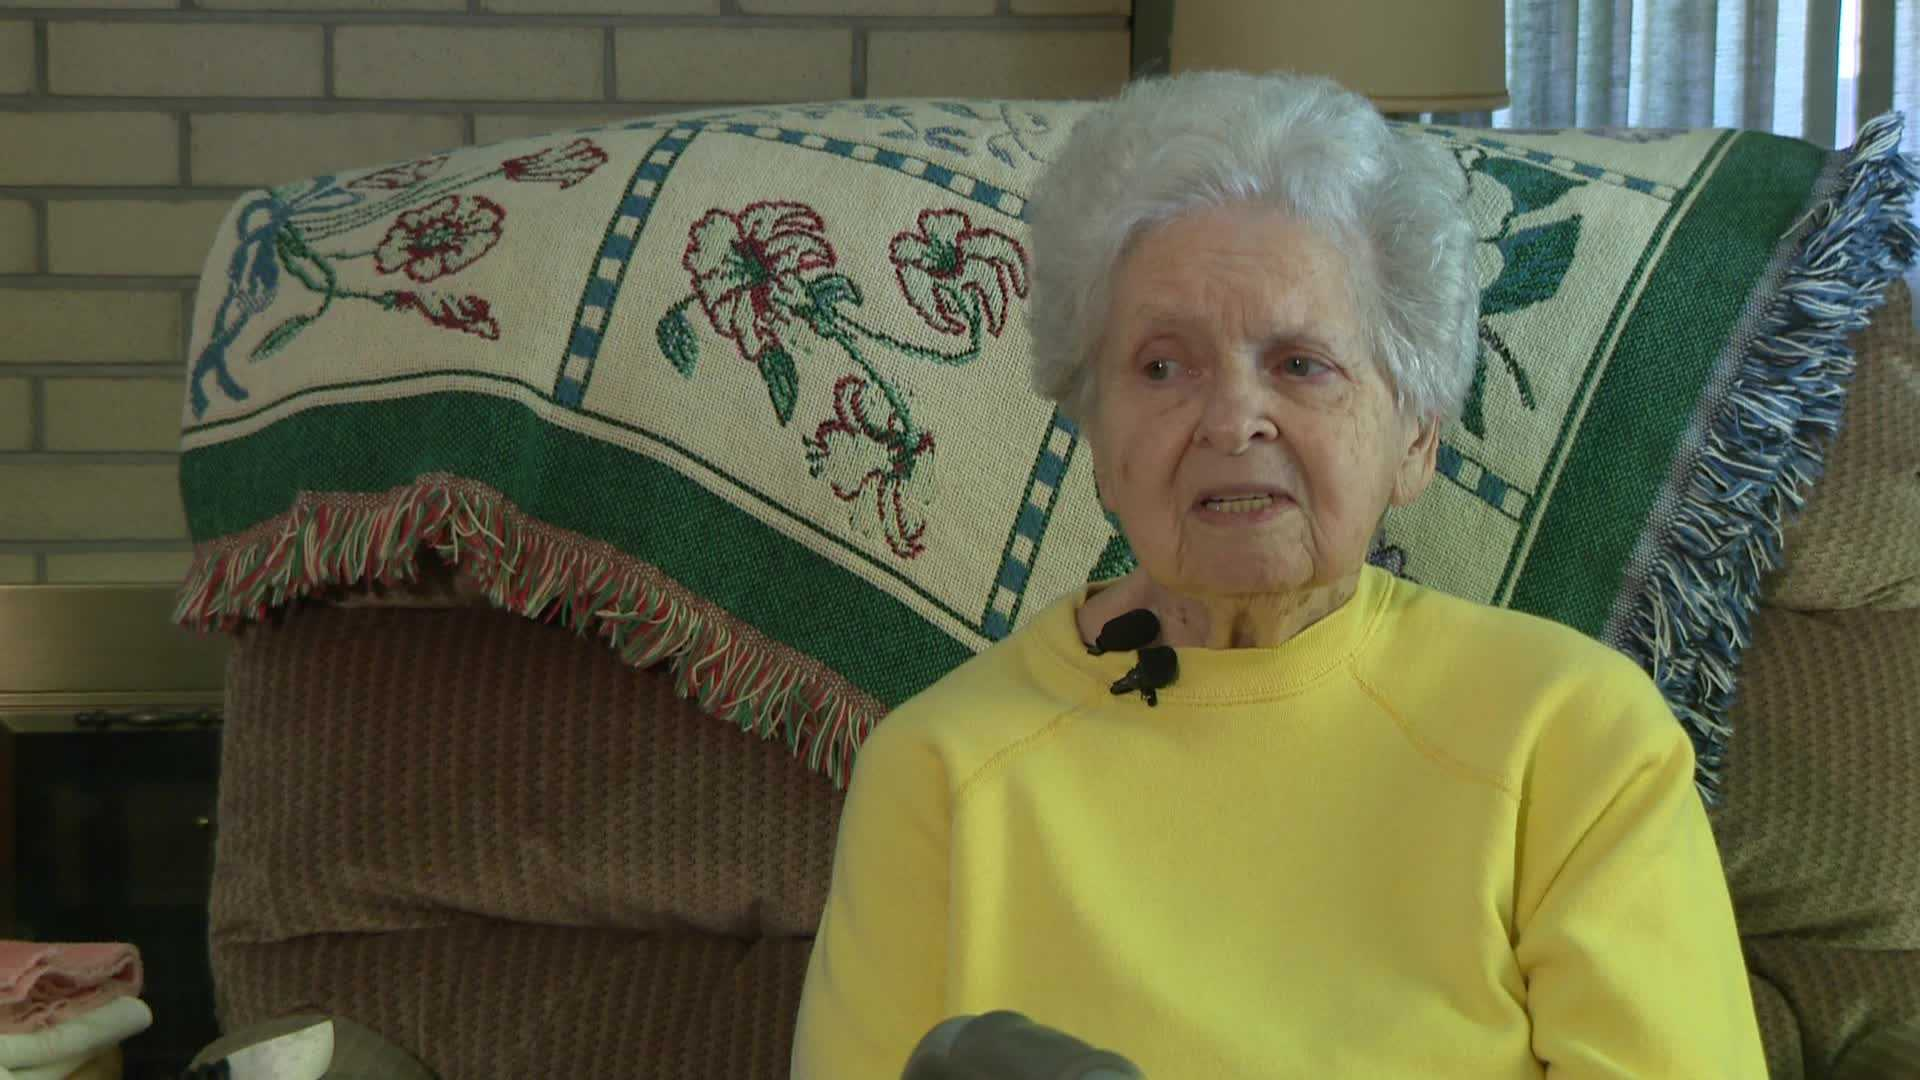 94-year-old Washington County woman robbed in the middle of the day while she was home